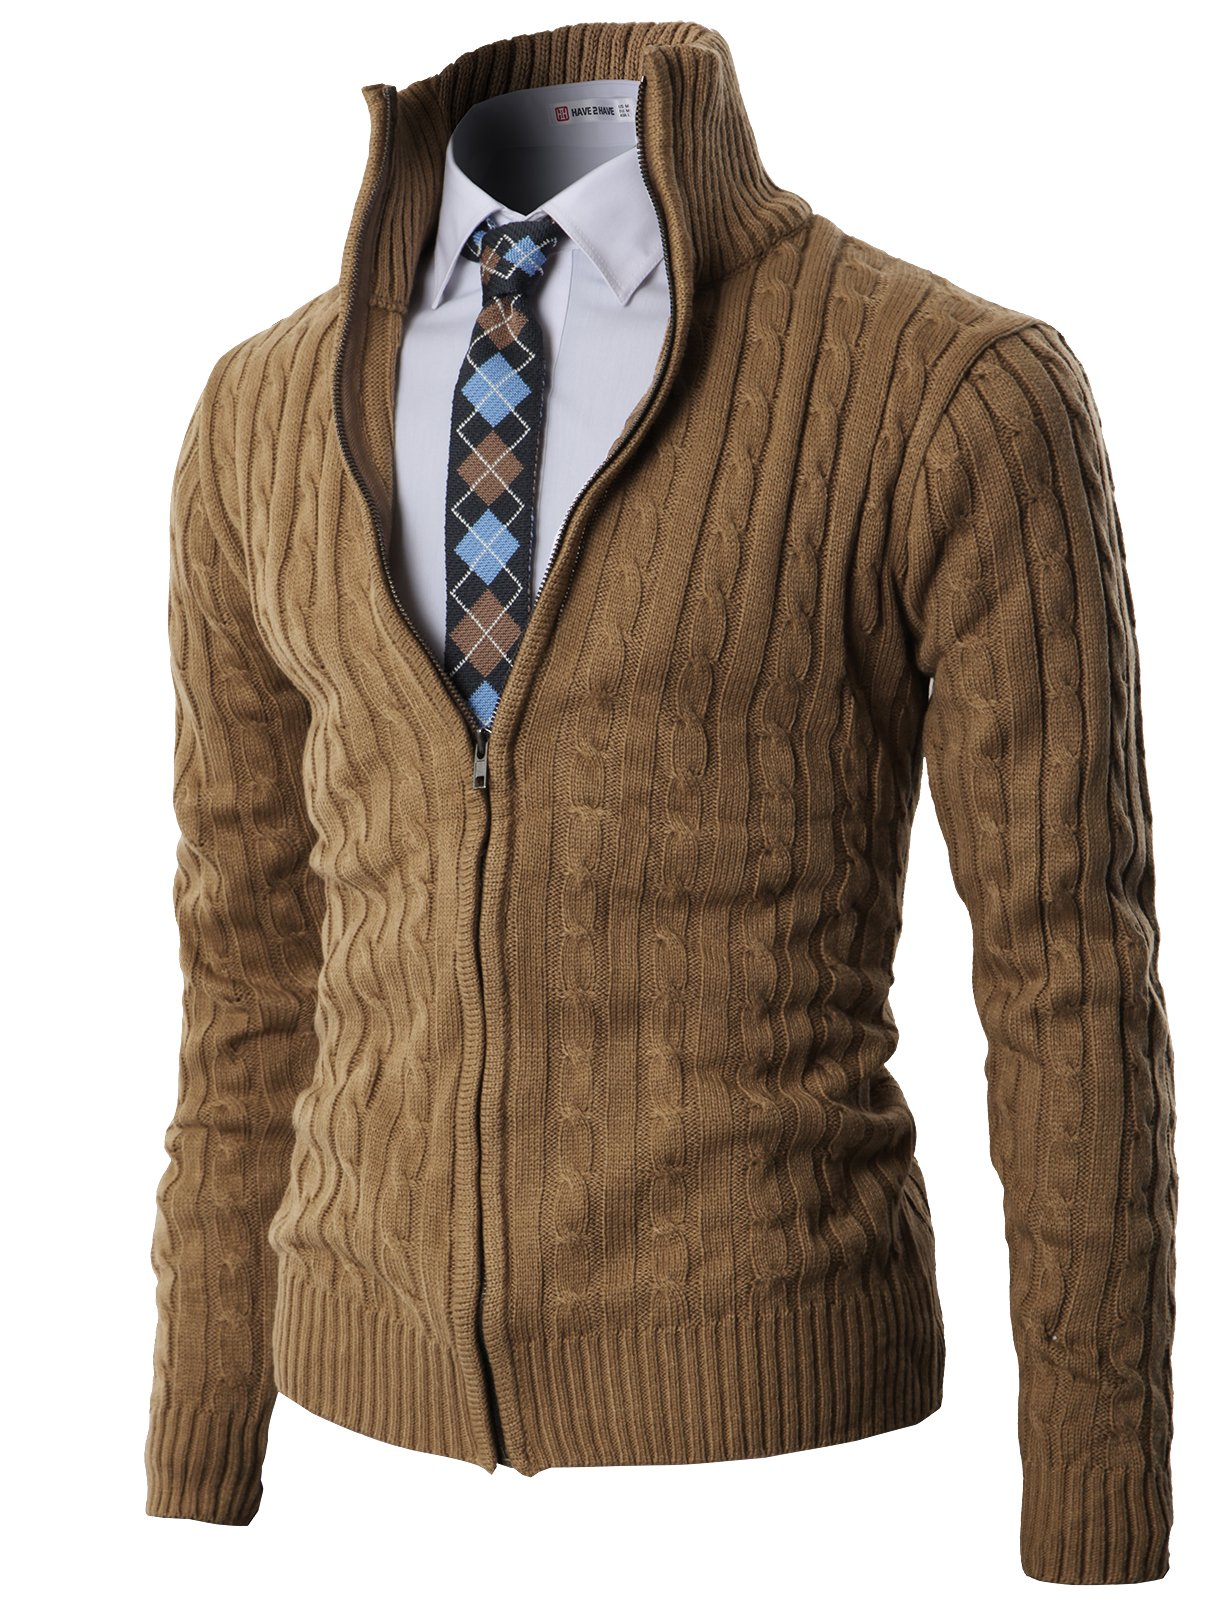 H2H Mens Casual Knitted Cardigan Zip-up with Twisted Pattern - US XL (Asia 2XL) - Kmocal017-beige